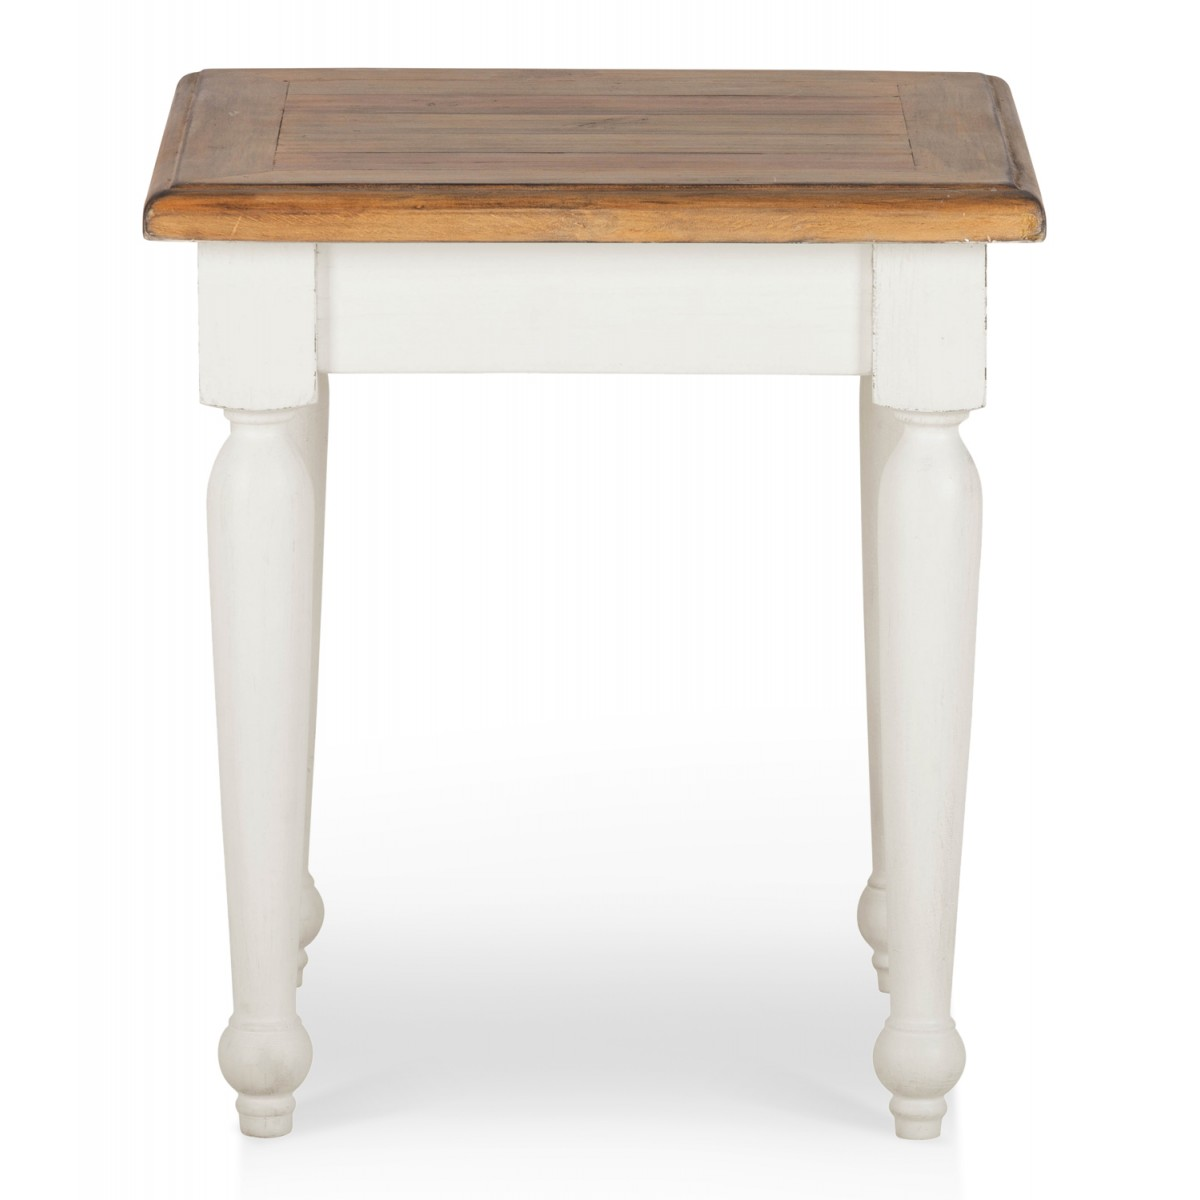 Table de chevet Bois Blanc 50x50x55cm